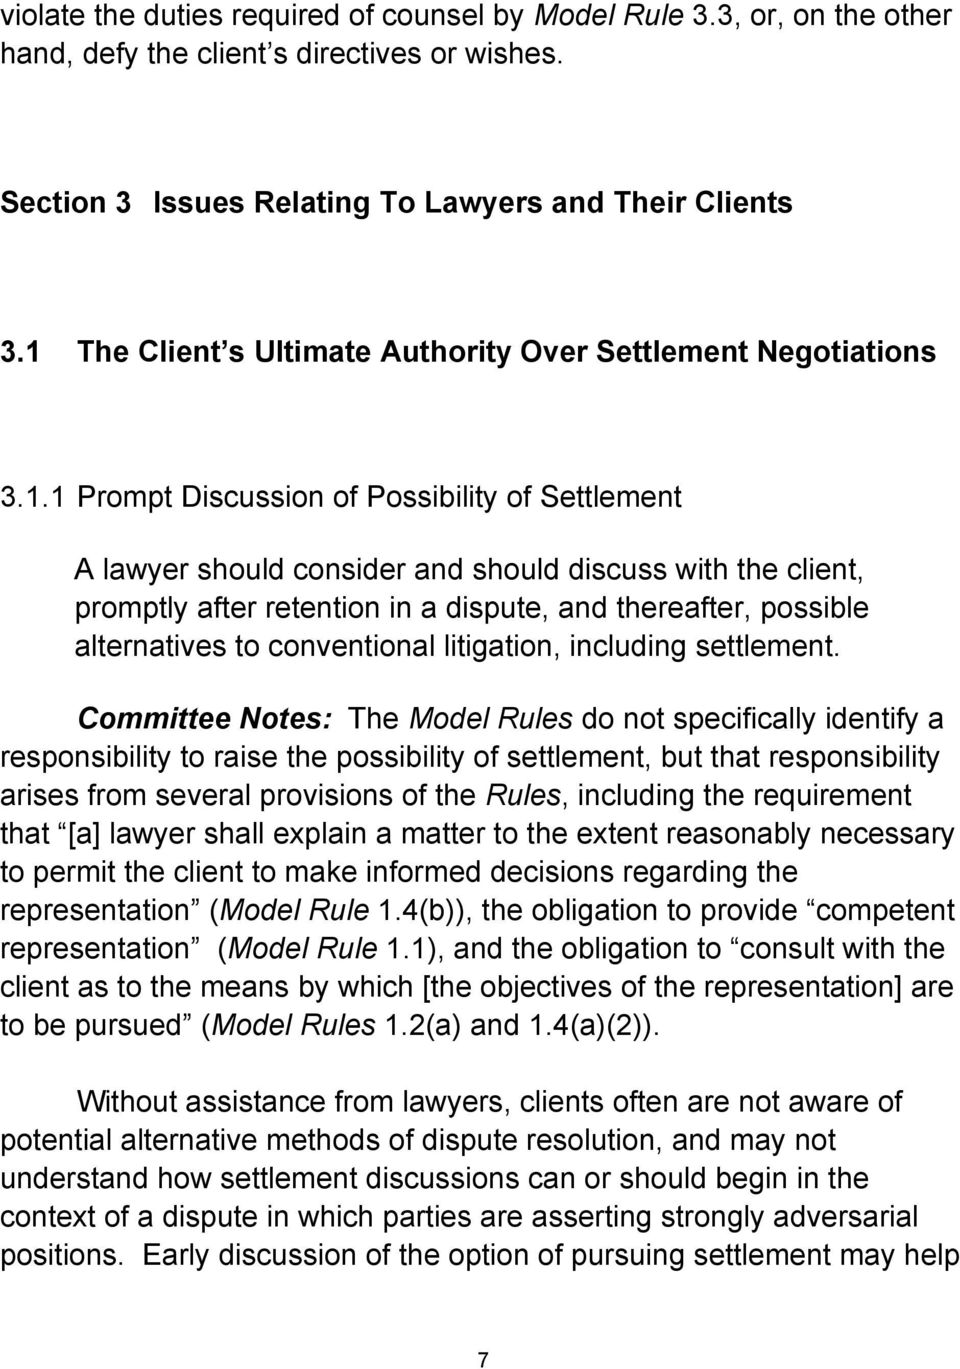 retention in a dispute, and thereafter, possible alternatives to conventional litigation, including settlement.